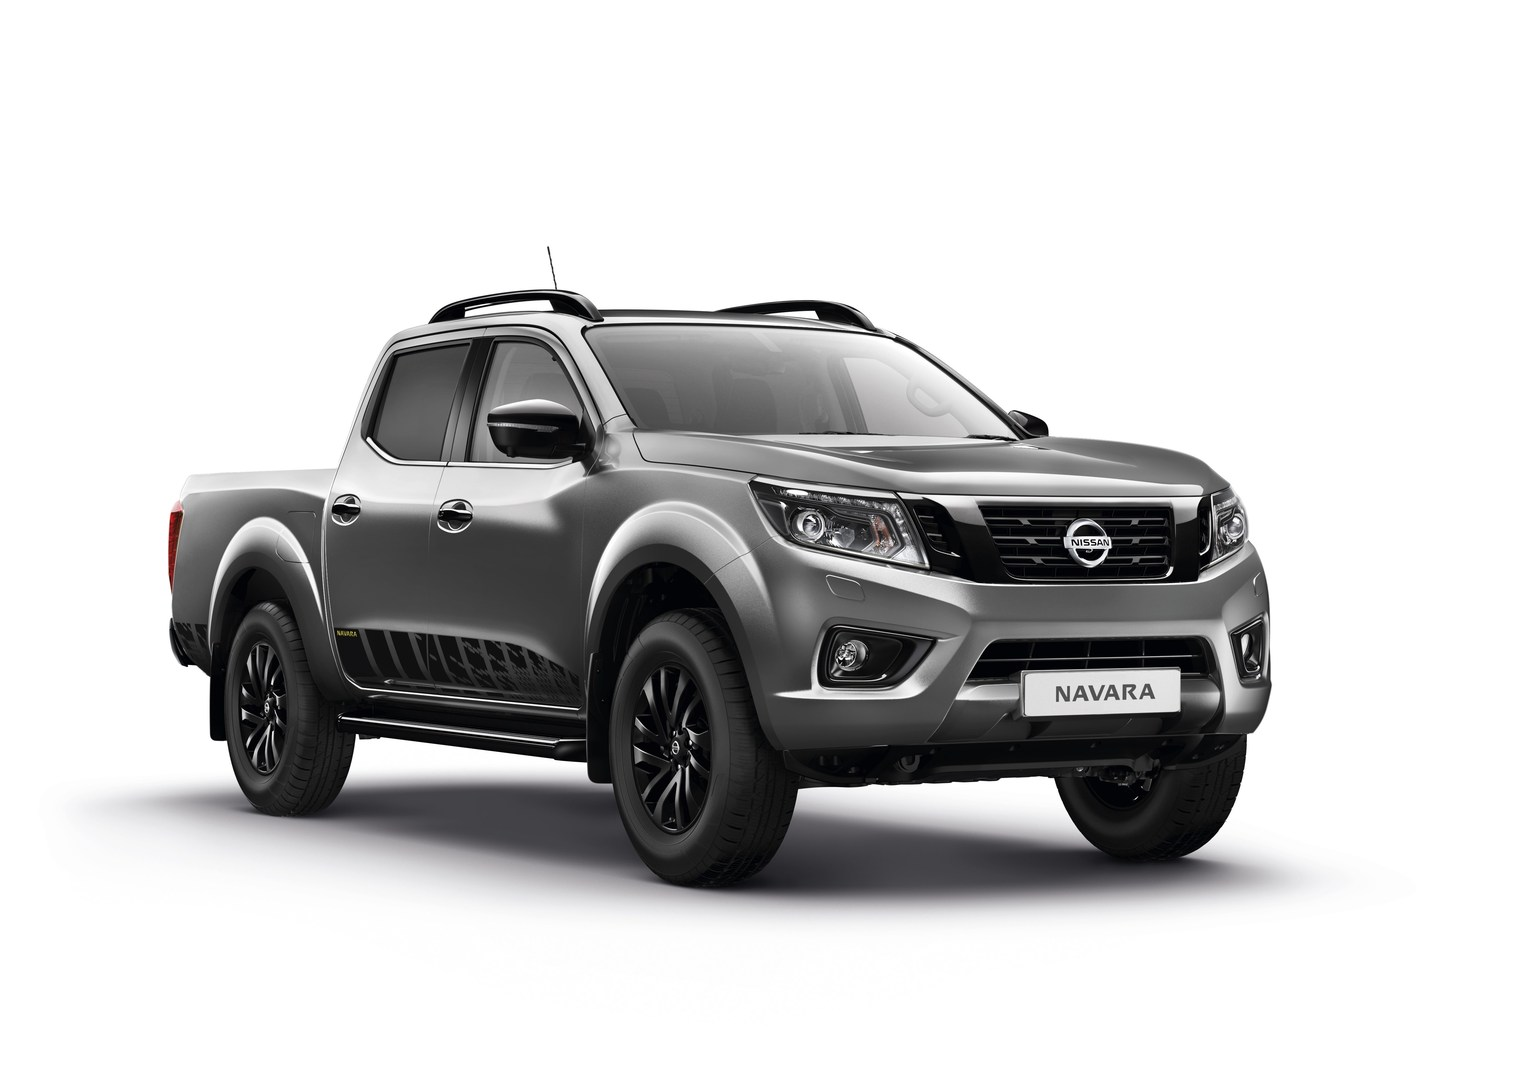 Tough and stylish: Nissan Navara N-Guard special version now on sale